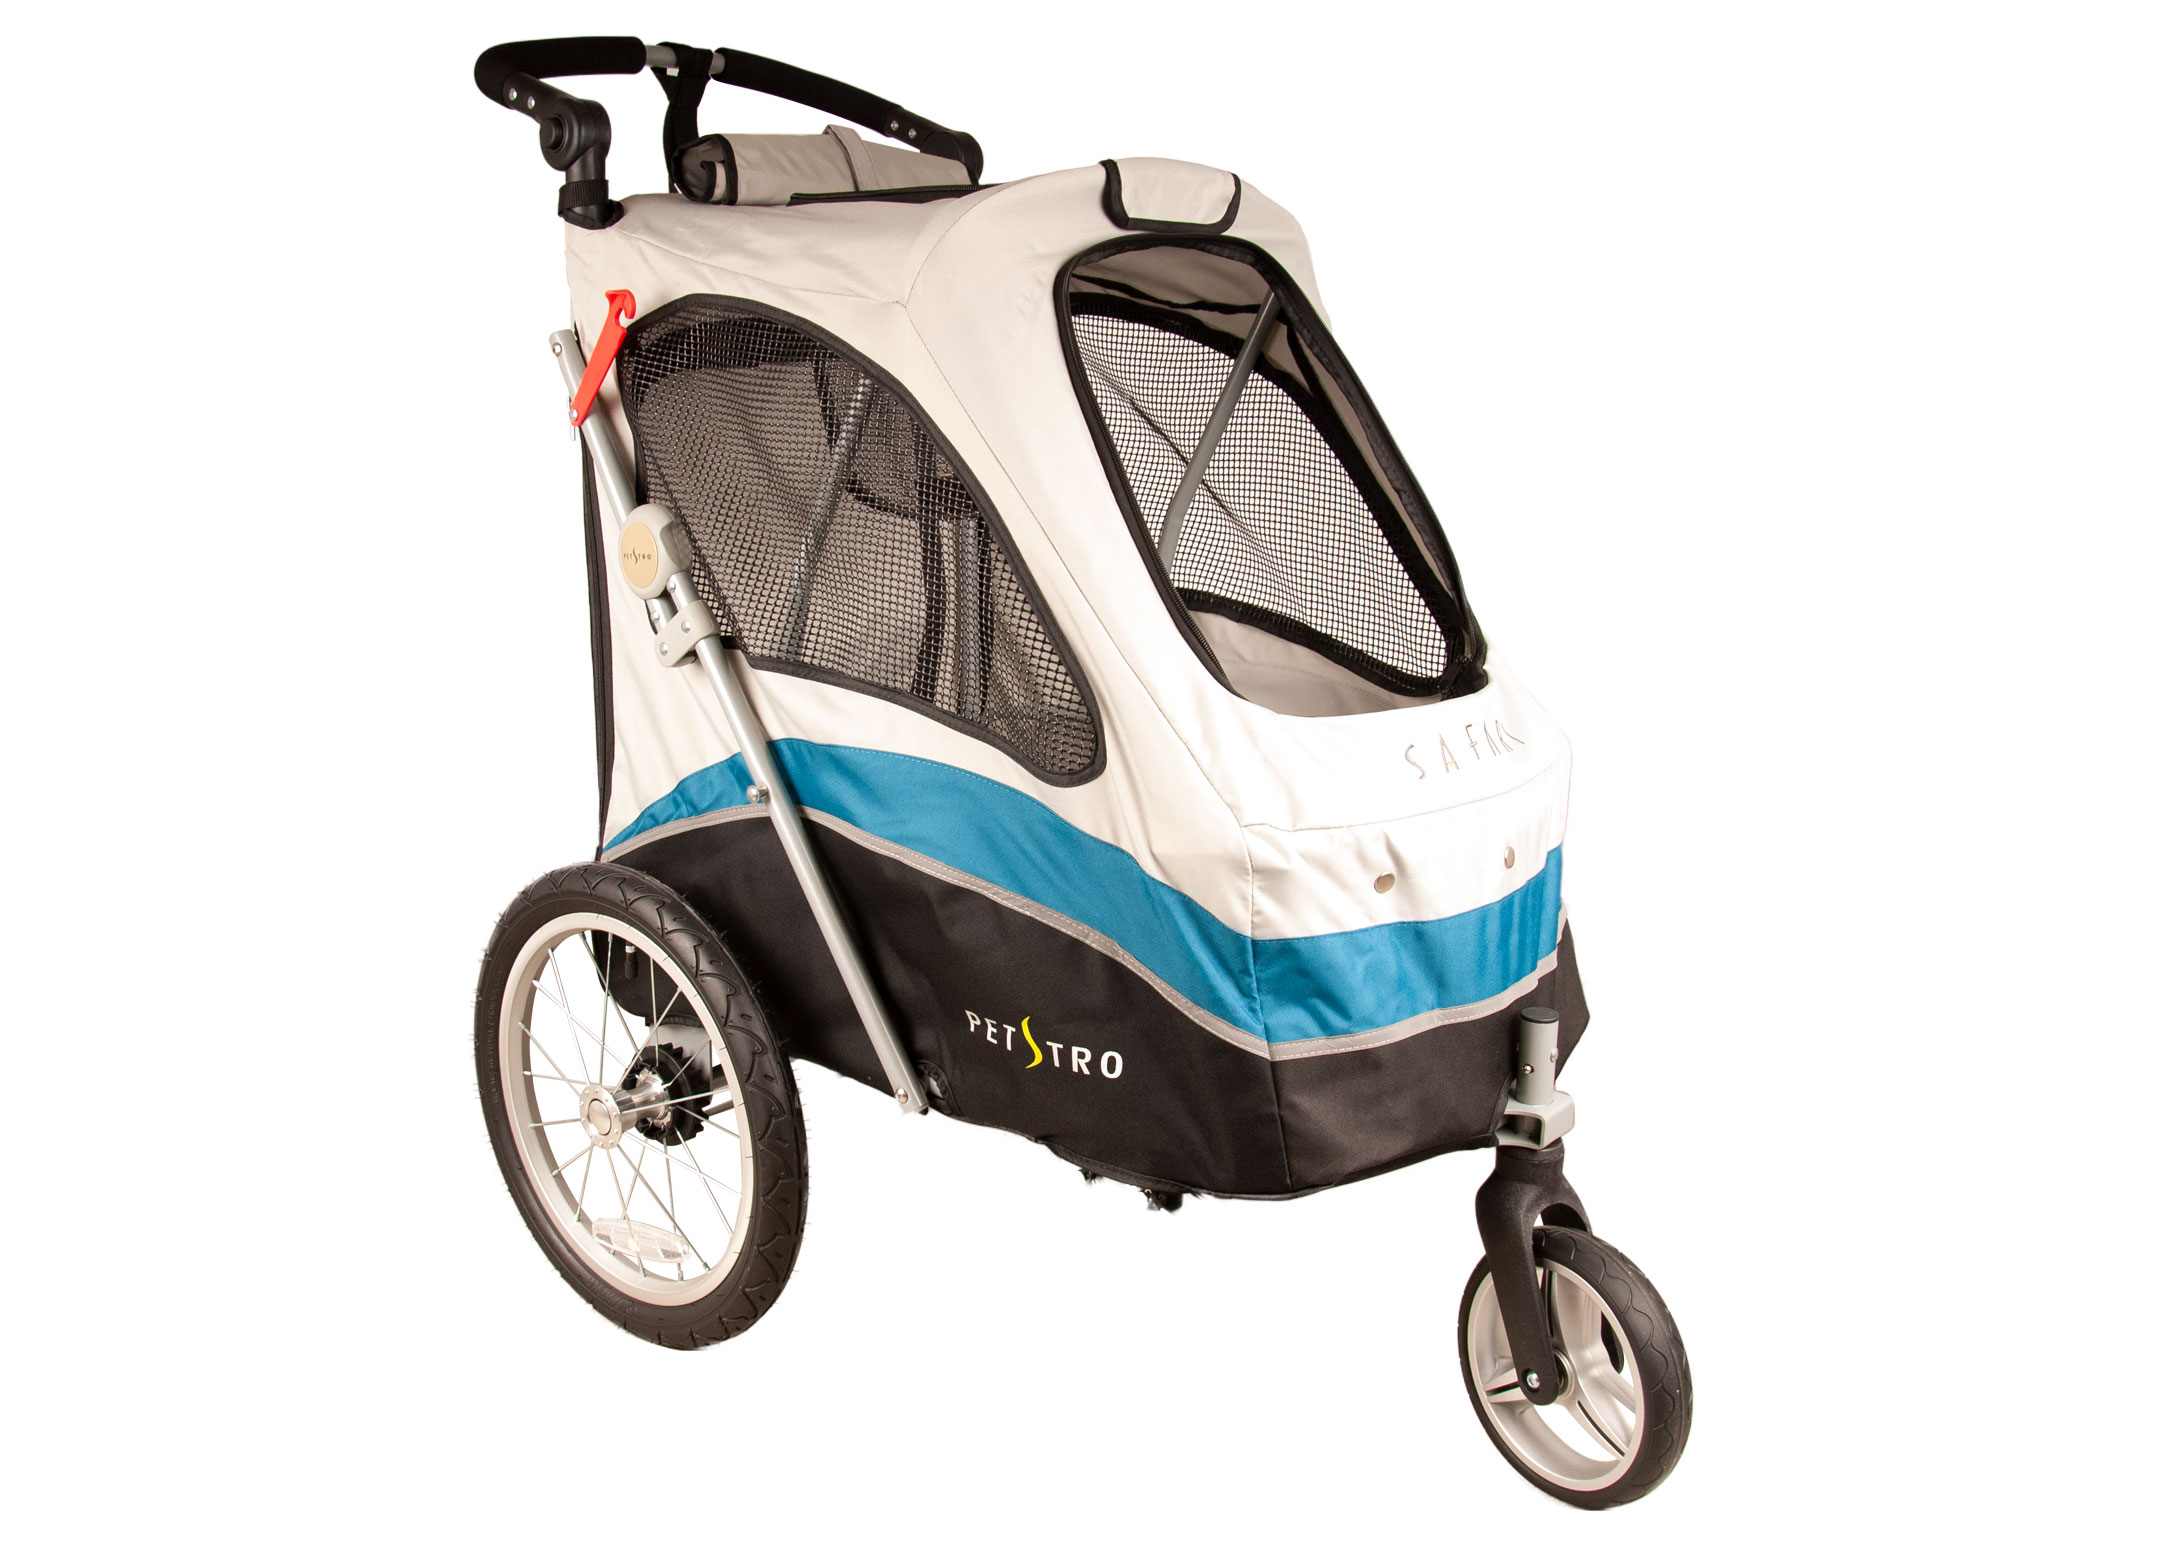 Petstro Medium 3-Wheel Buggy, Turquoise/Grey